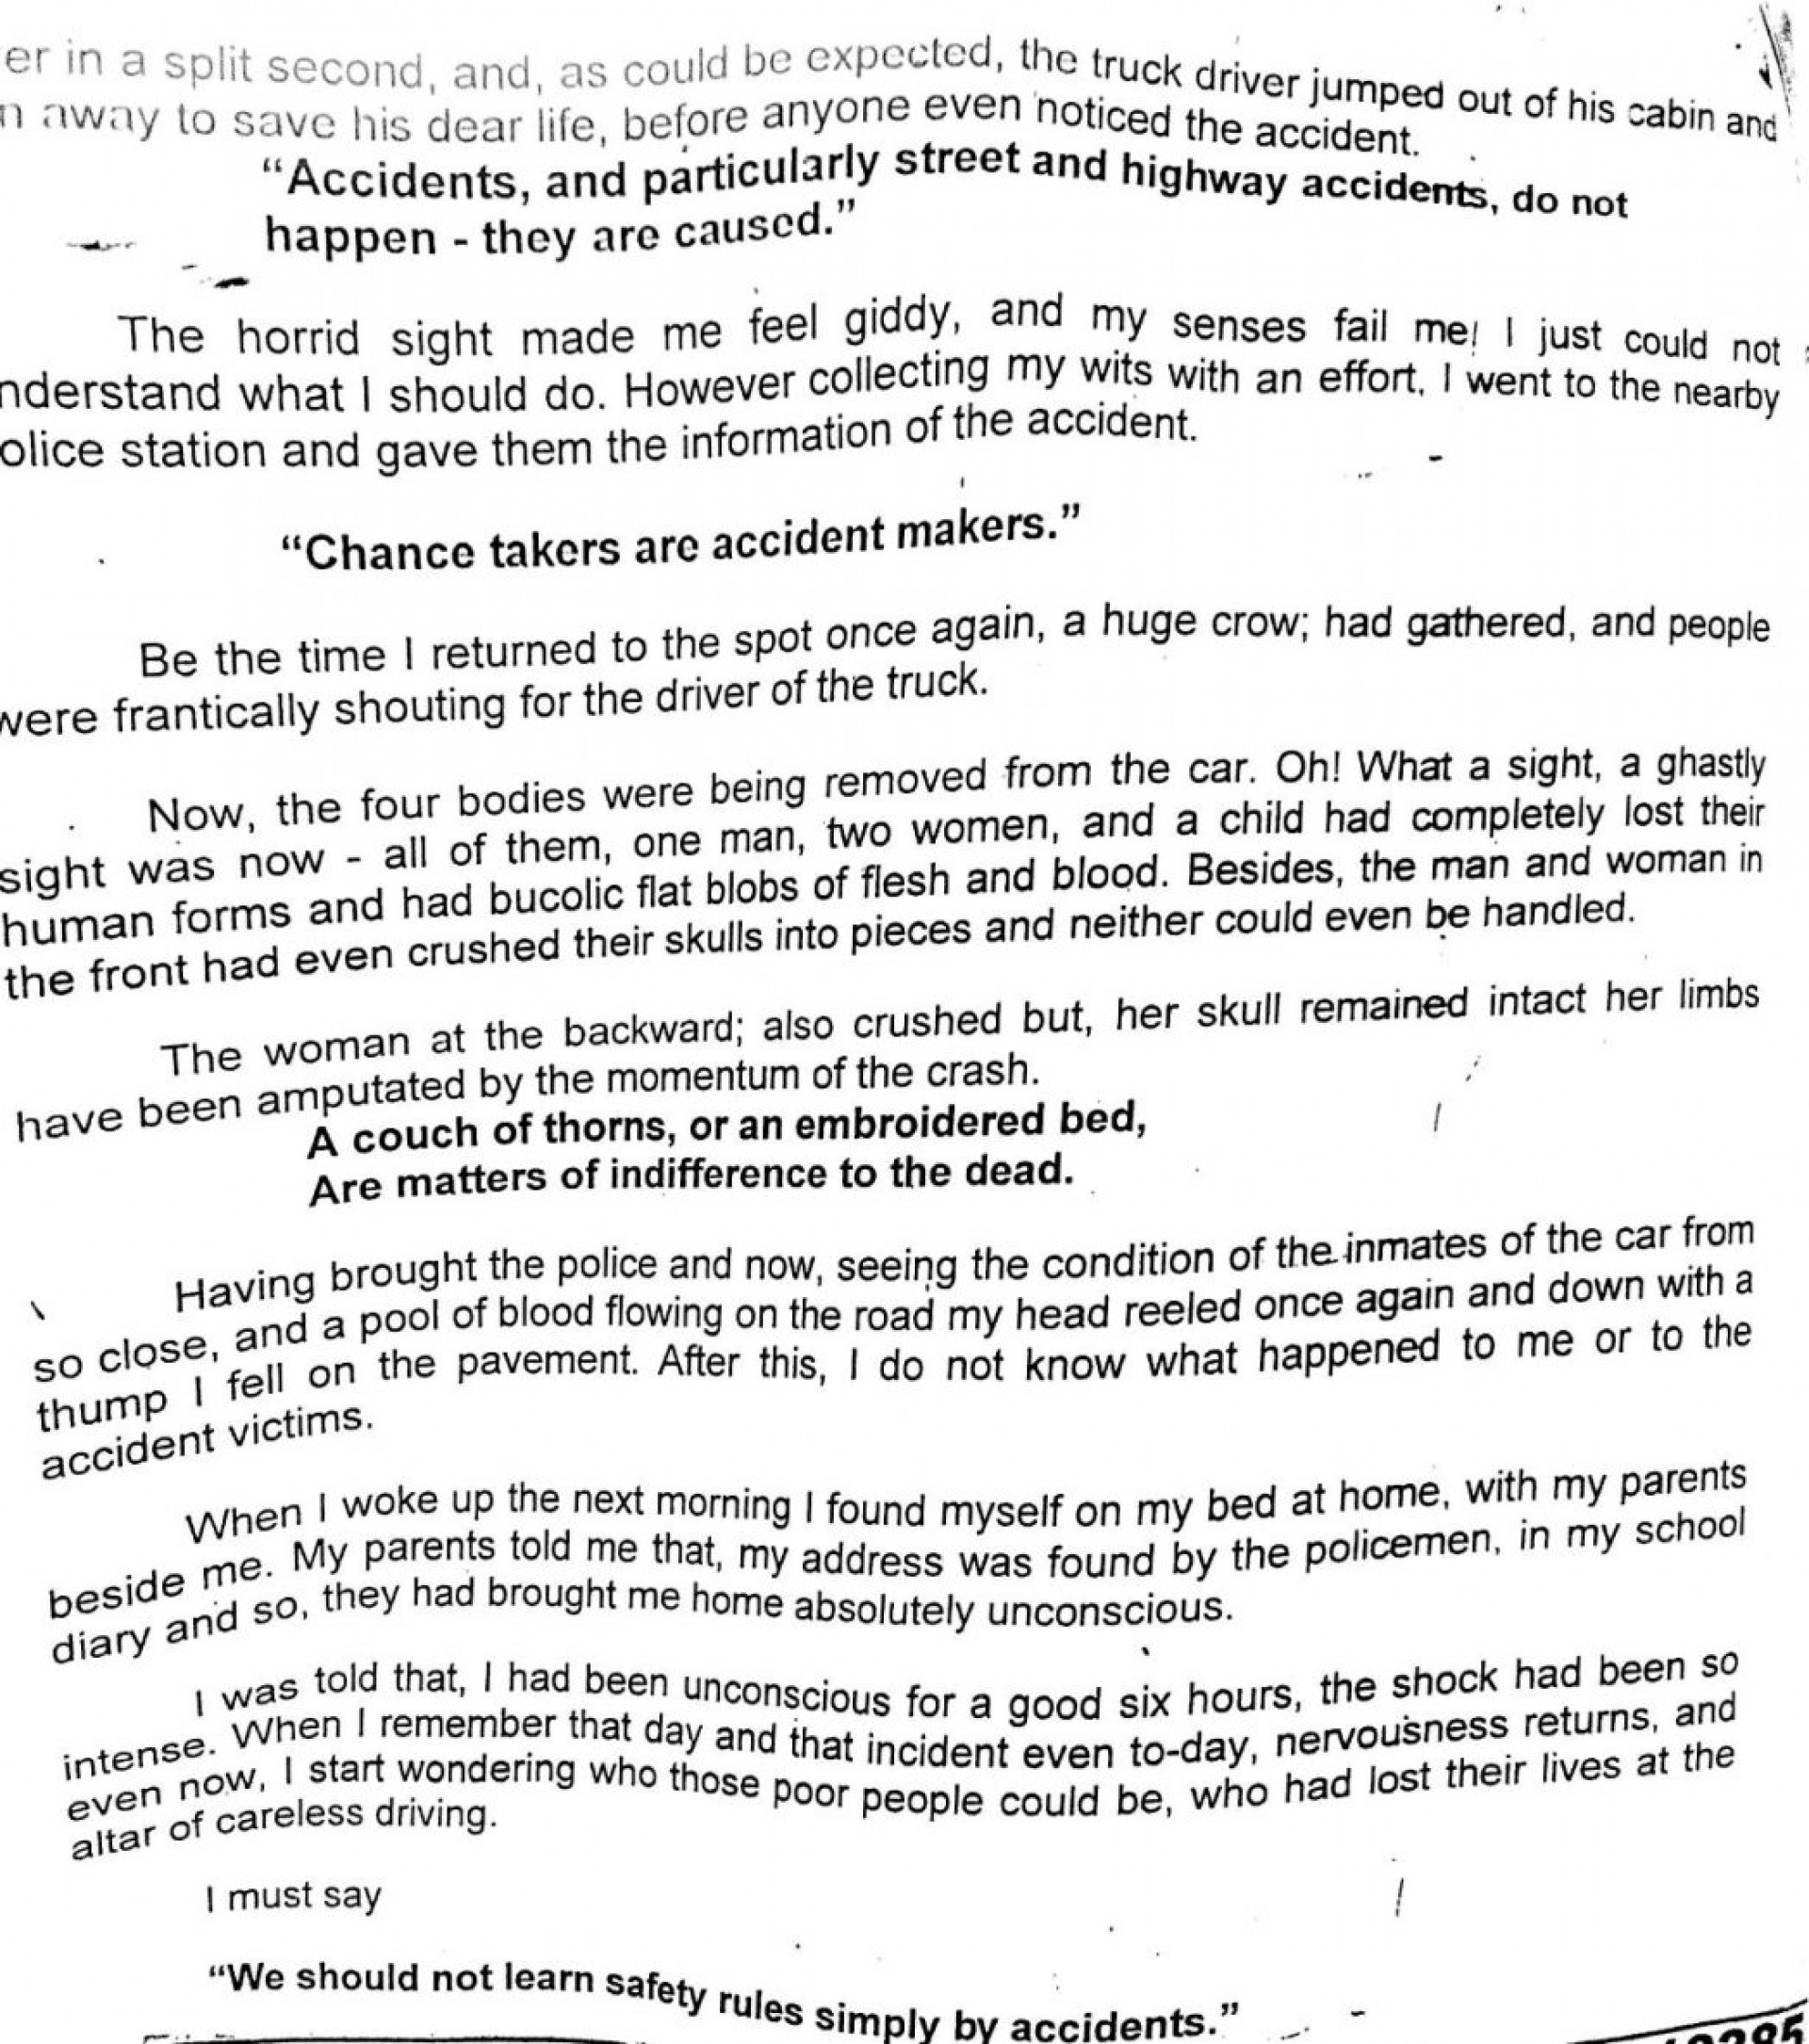 essay in english for students road accident write an on happy    essay in english for students road accident write an on happy new  year x example